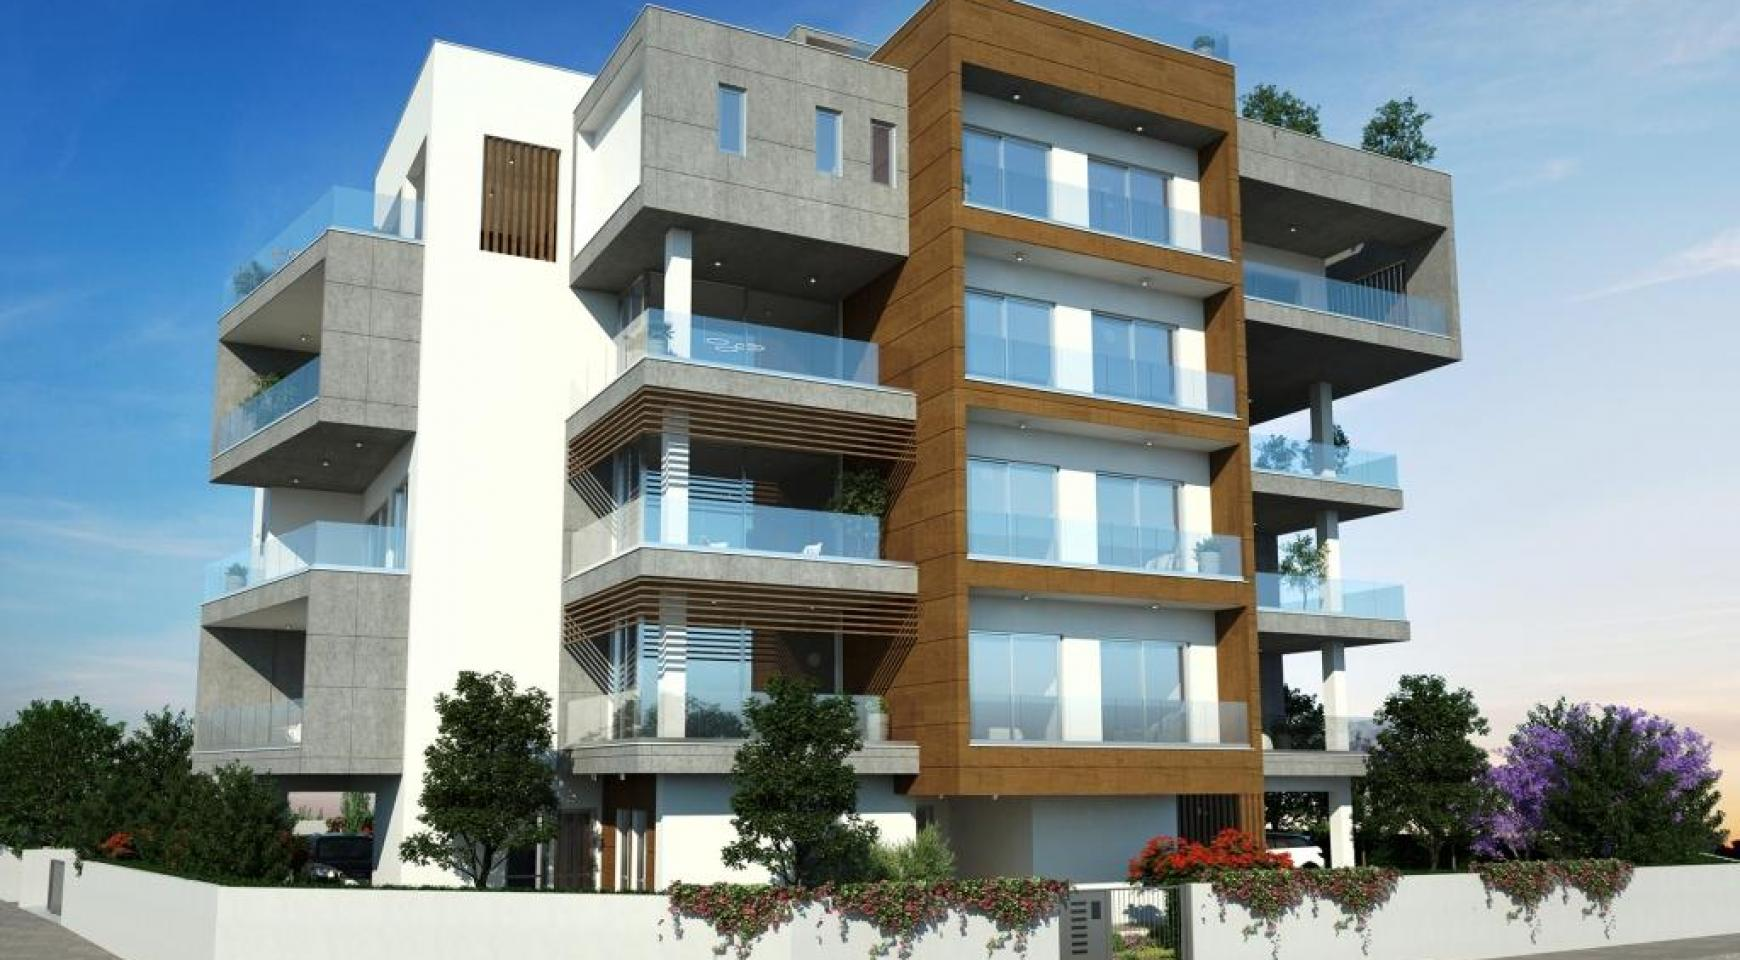 New Modern 2 Bedroom Apartment in Mesa Geitonia - 3